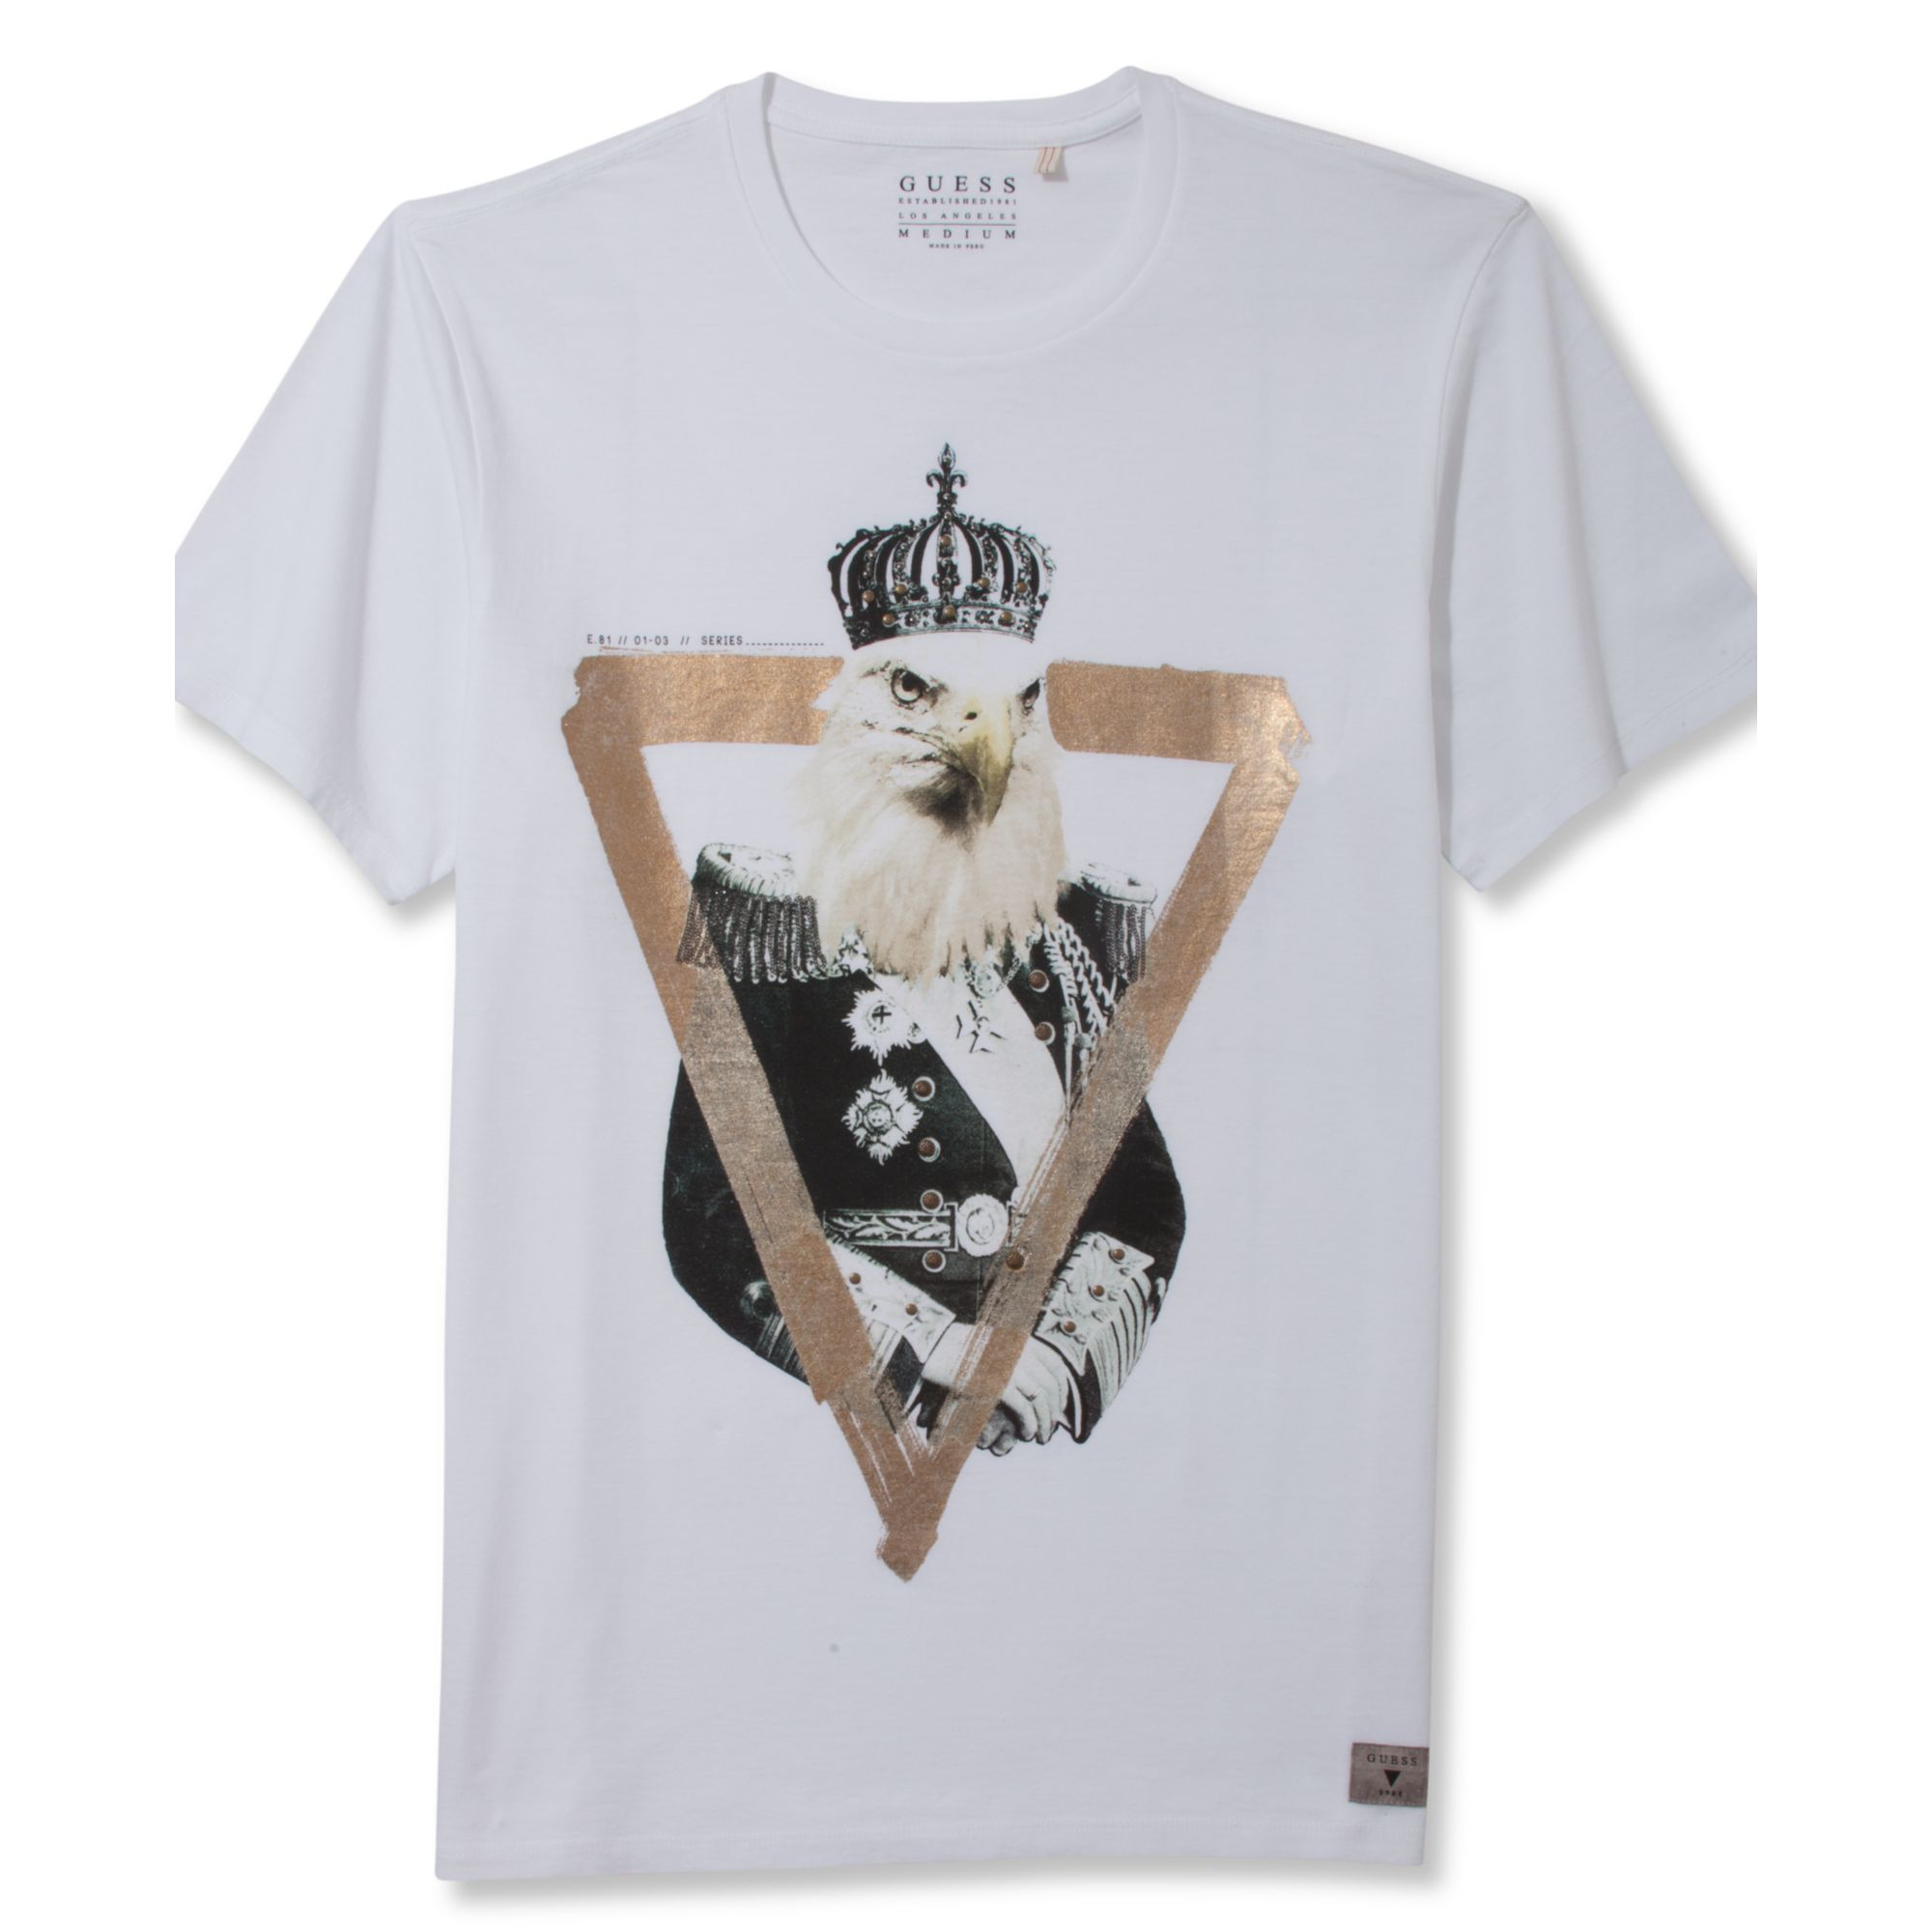 guess shirt short sleeve eagle graphic t shirt in white. Black Bedroom Furniture Sets. Home Design Ideas